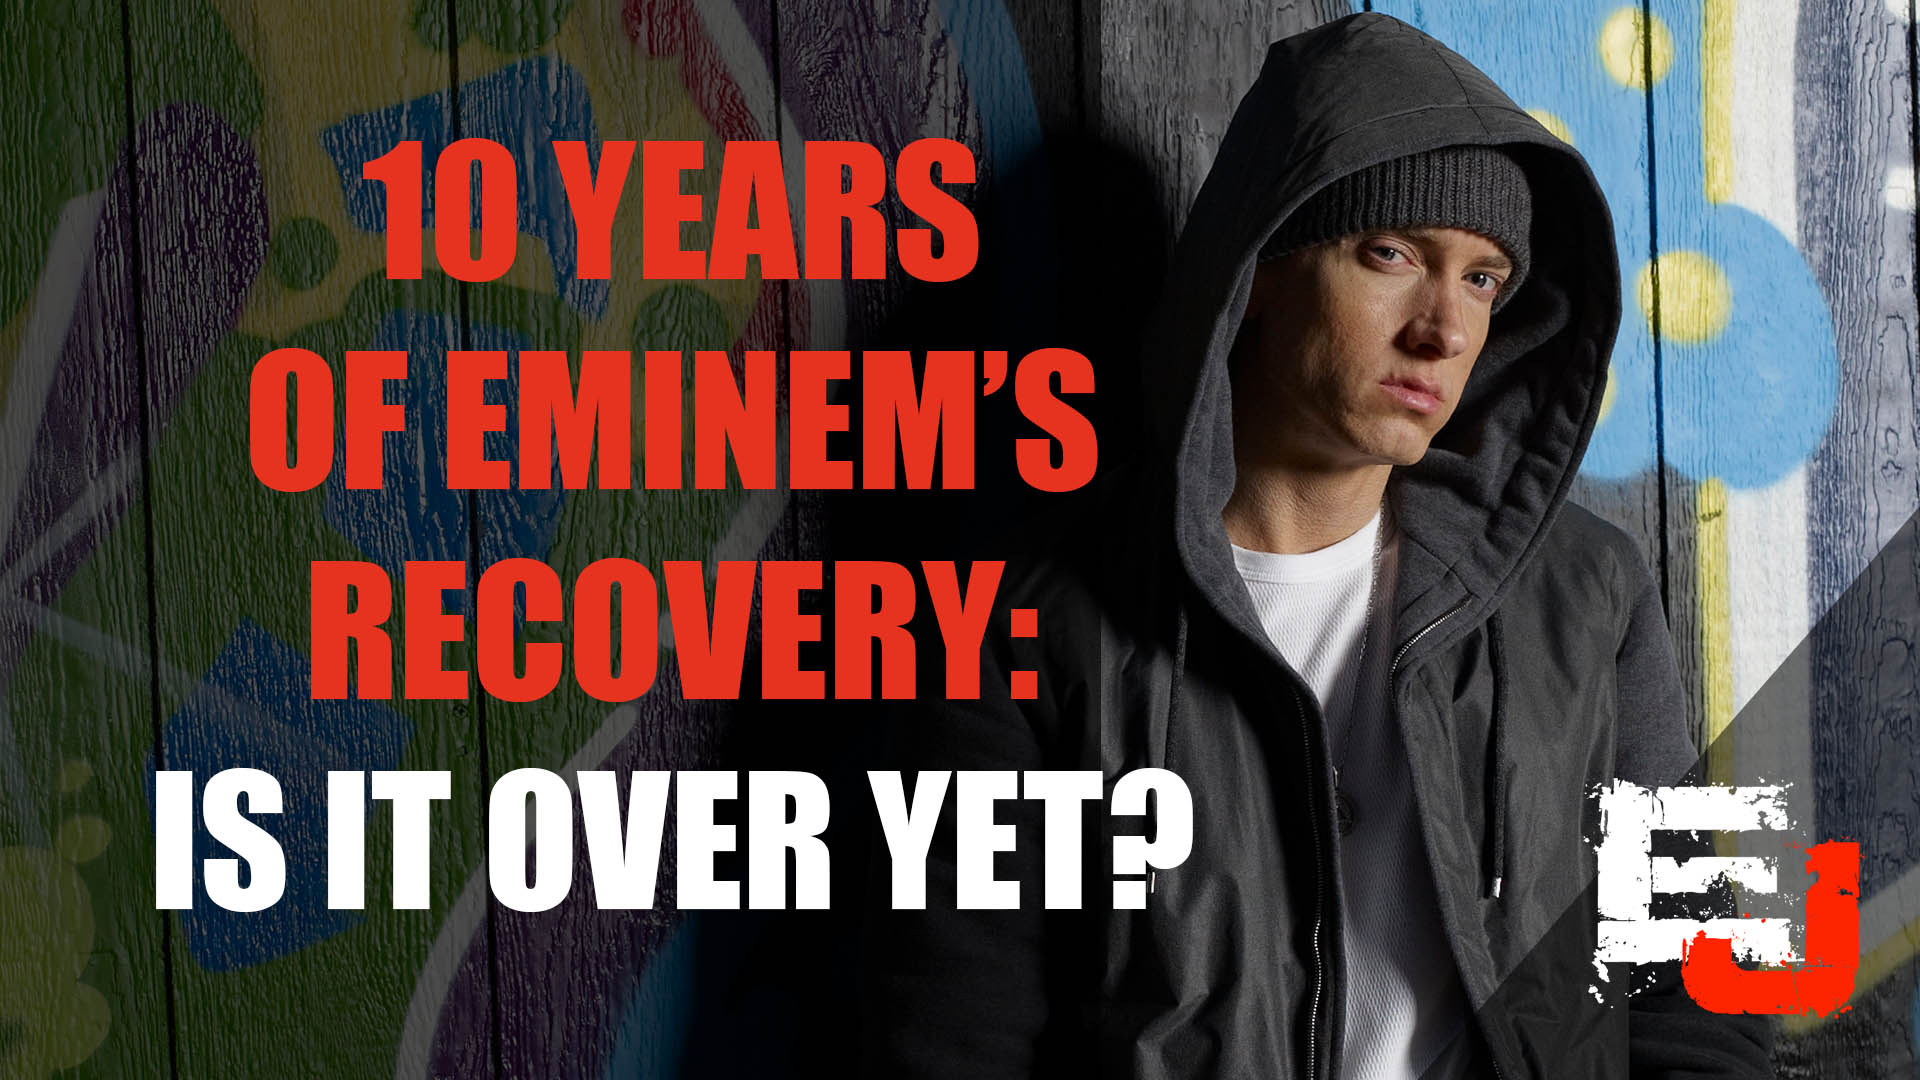 10 Years of Eminem's Recovery: Is It Over Yet?